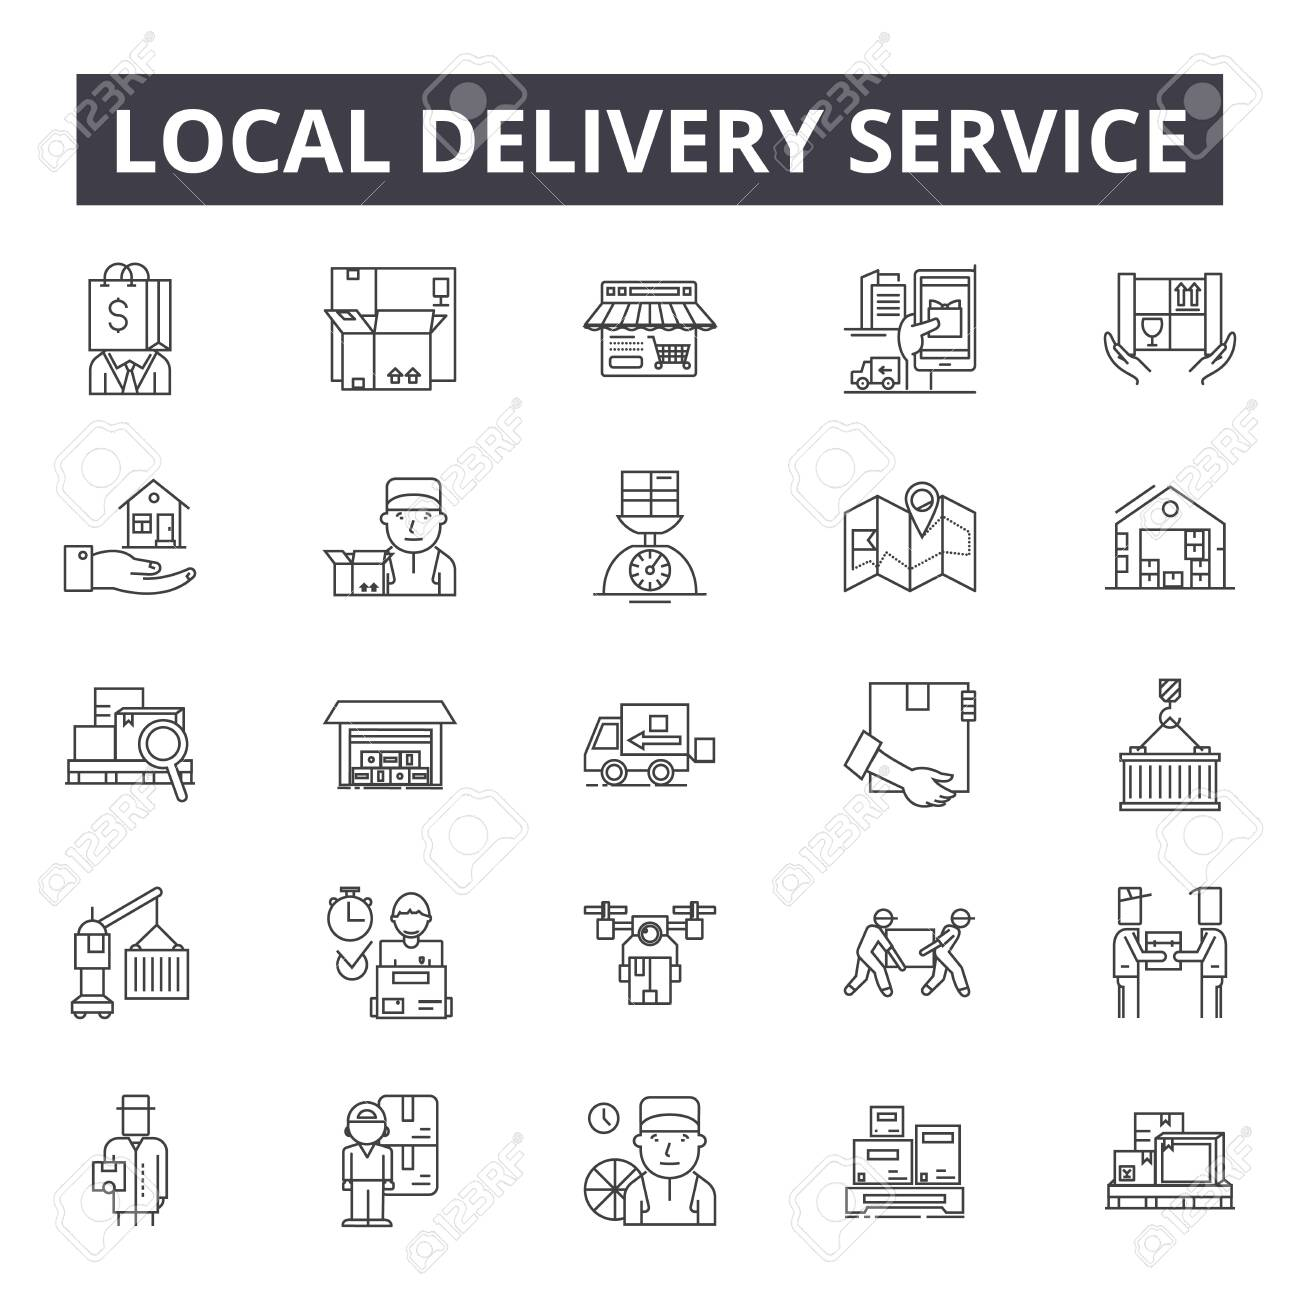 Local delivery service line icons, signs set, vector. Local delivery service outline concept illustration: service,delivery,business,local,courier,defast,online - 120896632